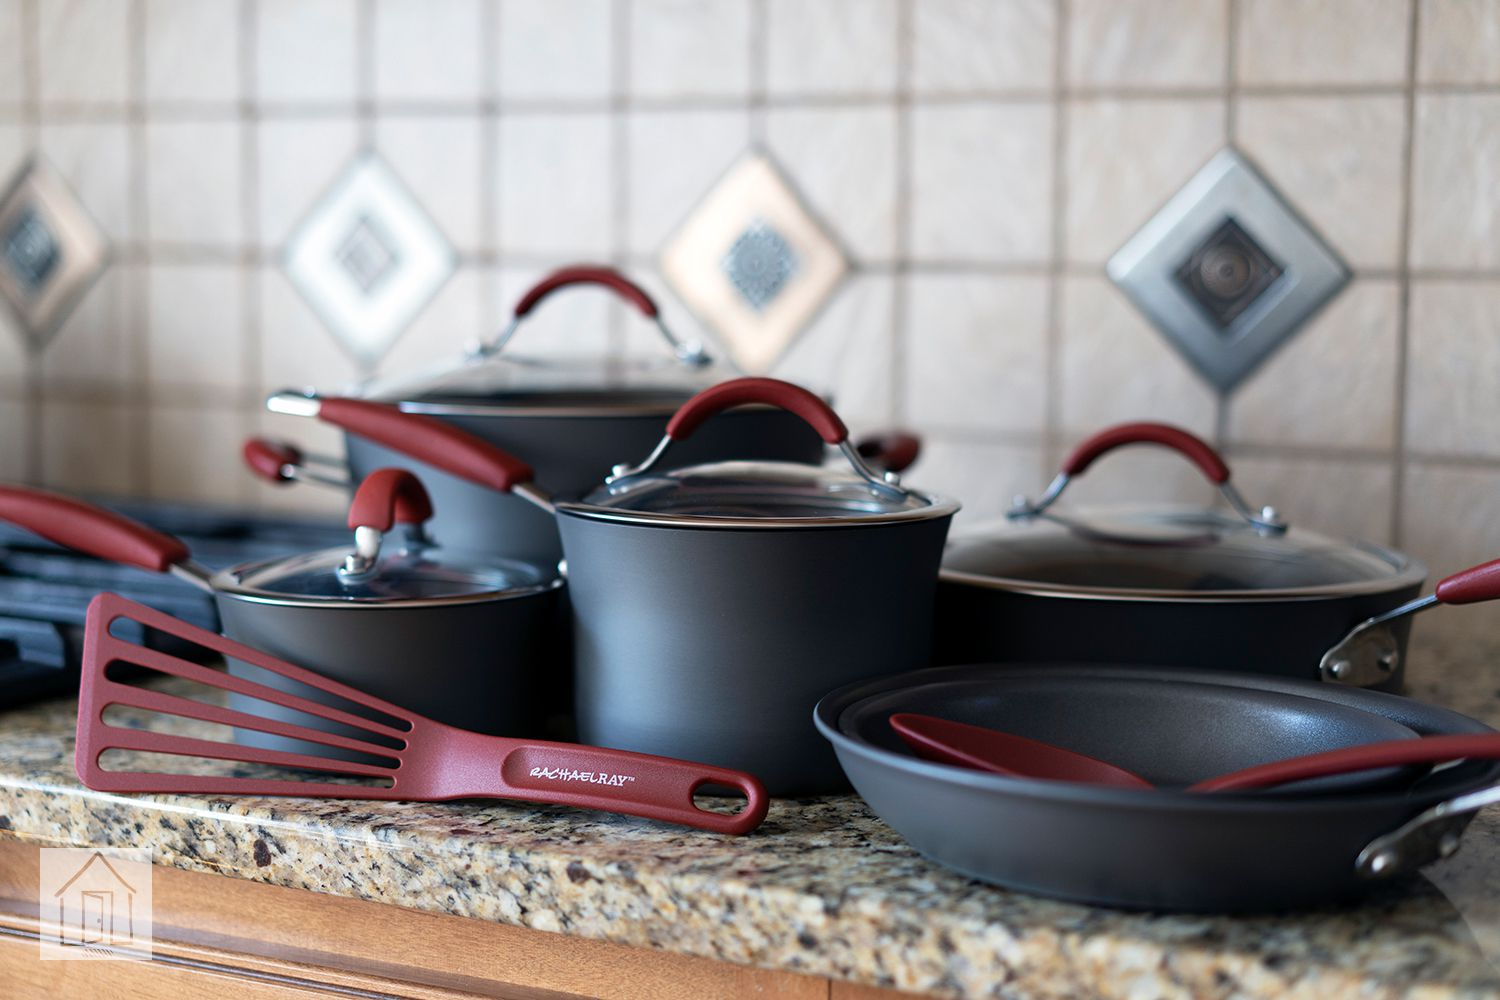 Rachael Ray Nonstick Cookware Set Review: A Great Value